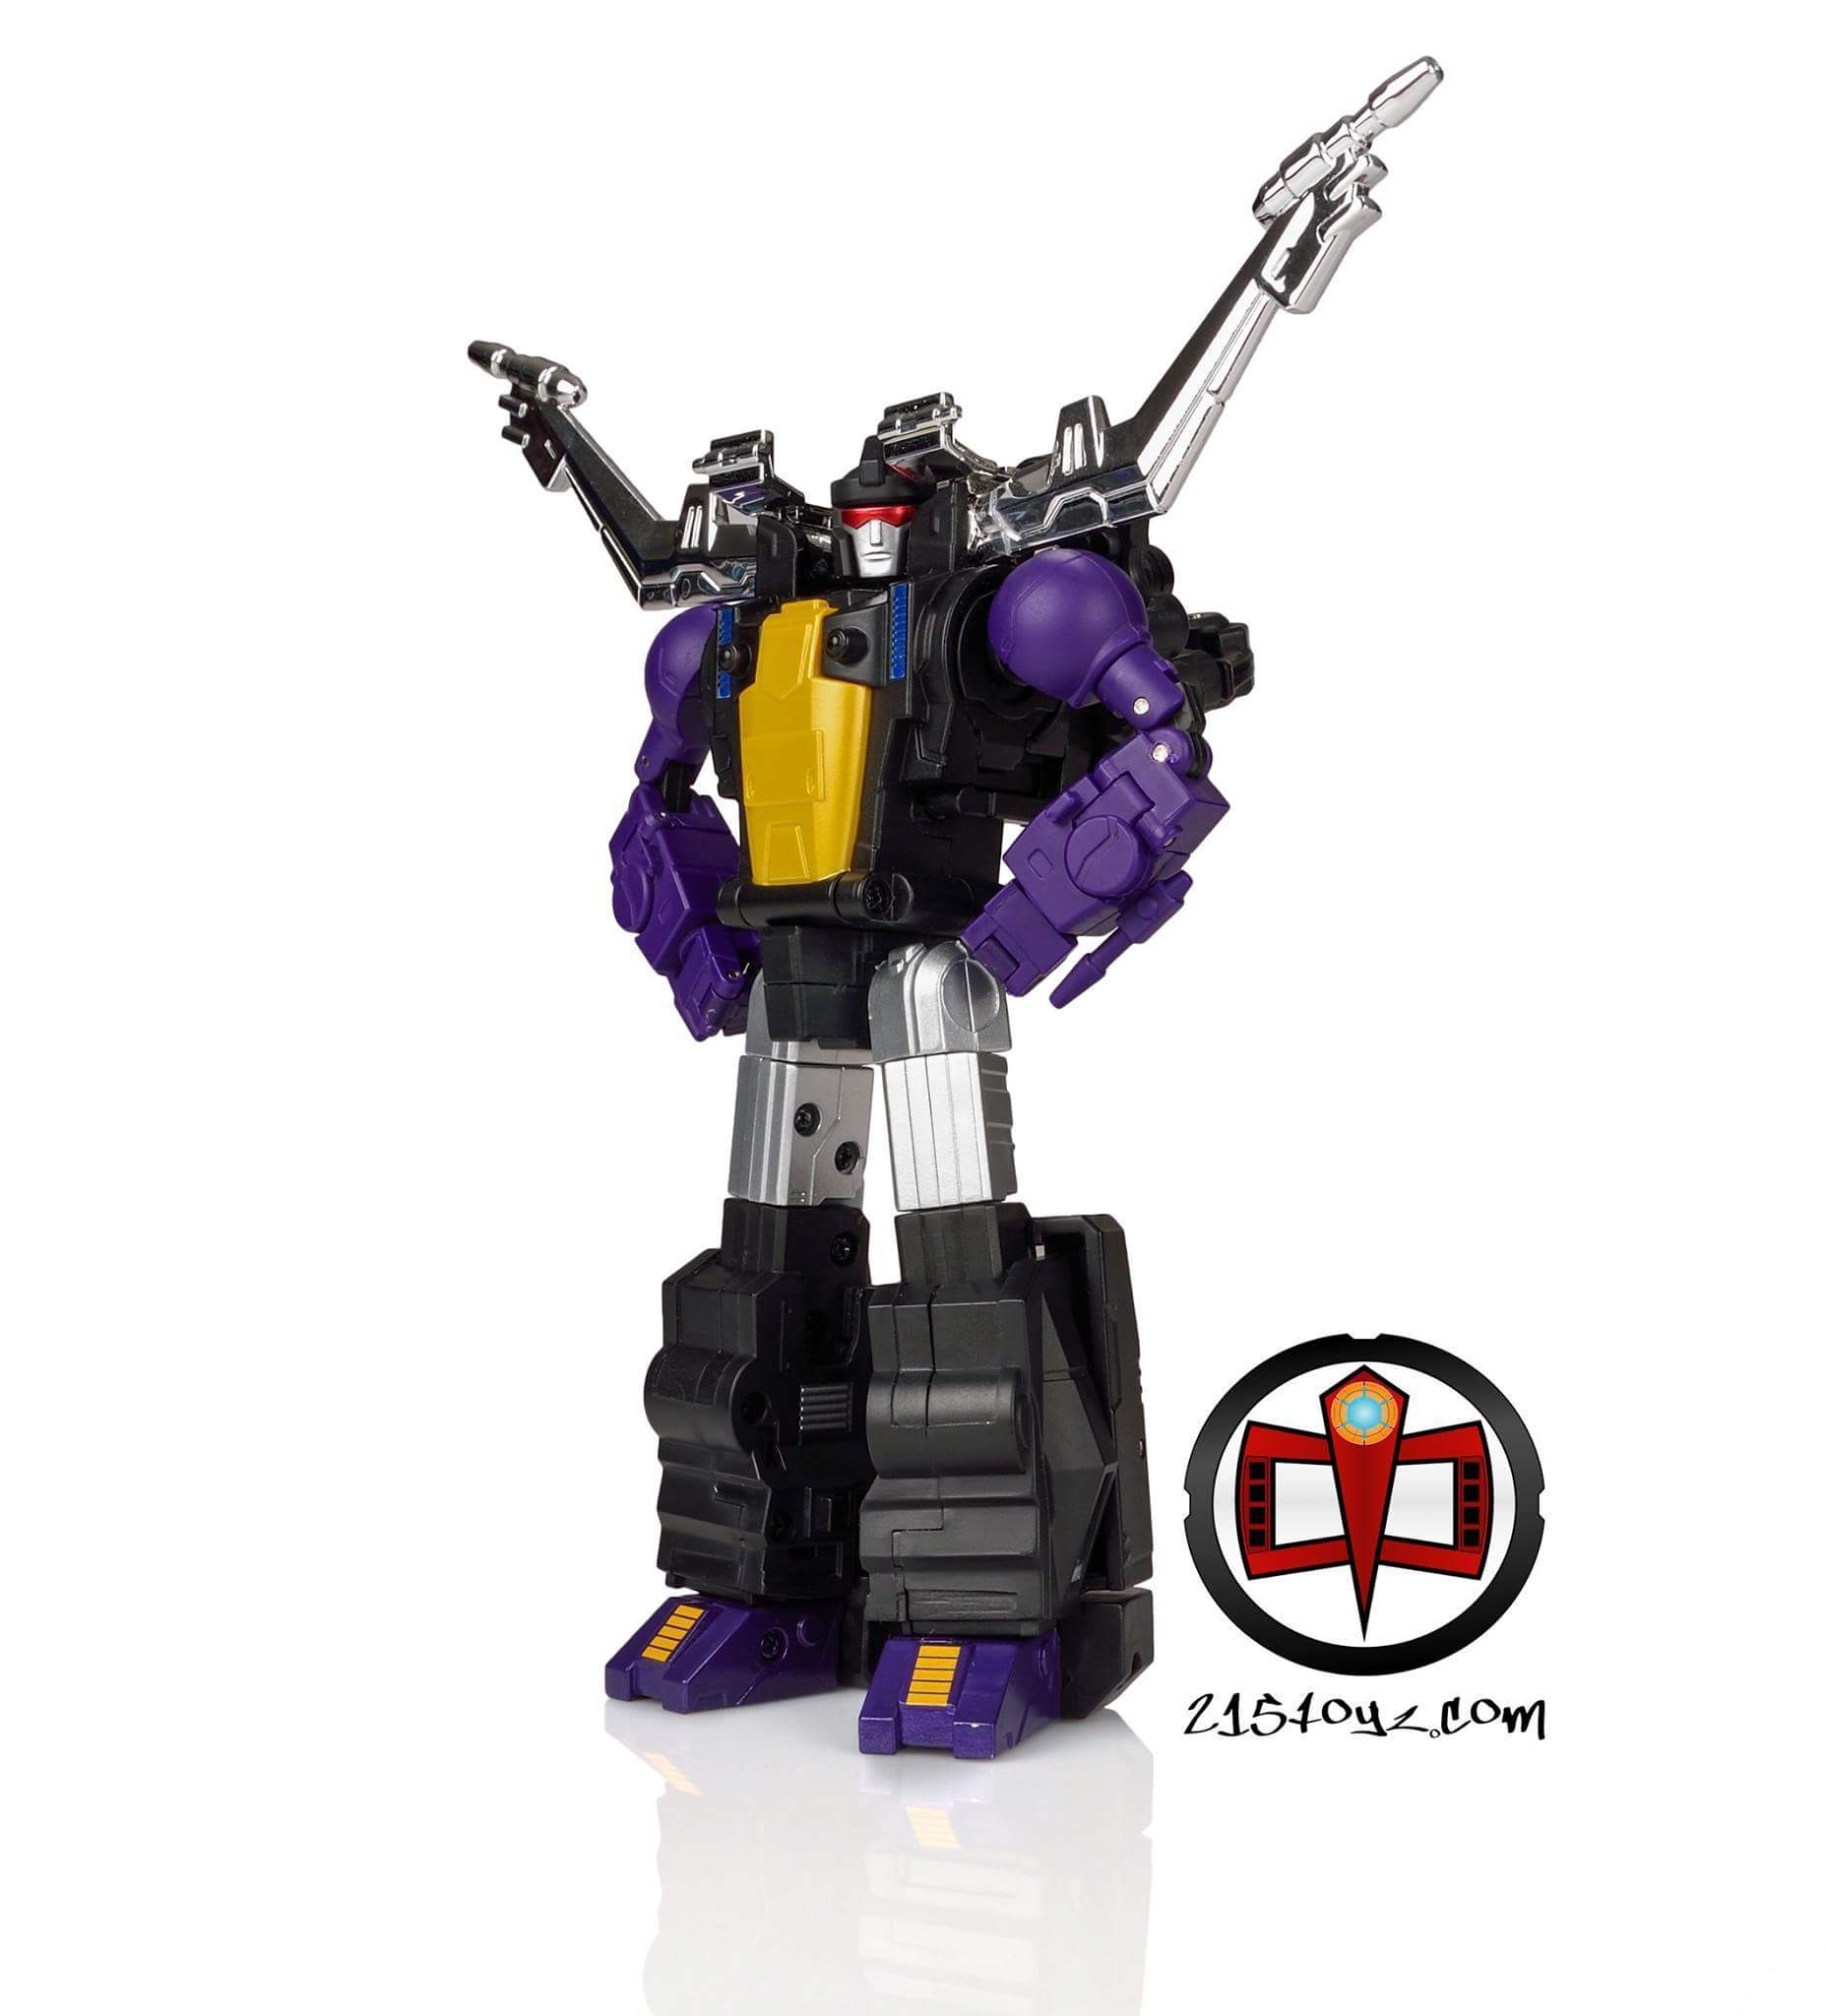 [Fanstoys] Produit Tiers - Jouet FT-12 Grenadier / FT-13 Mercenary / FT-14 Forager - aka Insecticons - Page 2 W2Jgcq6l